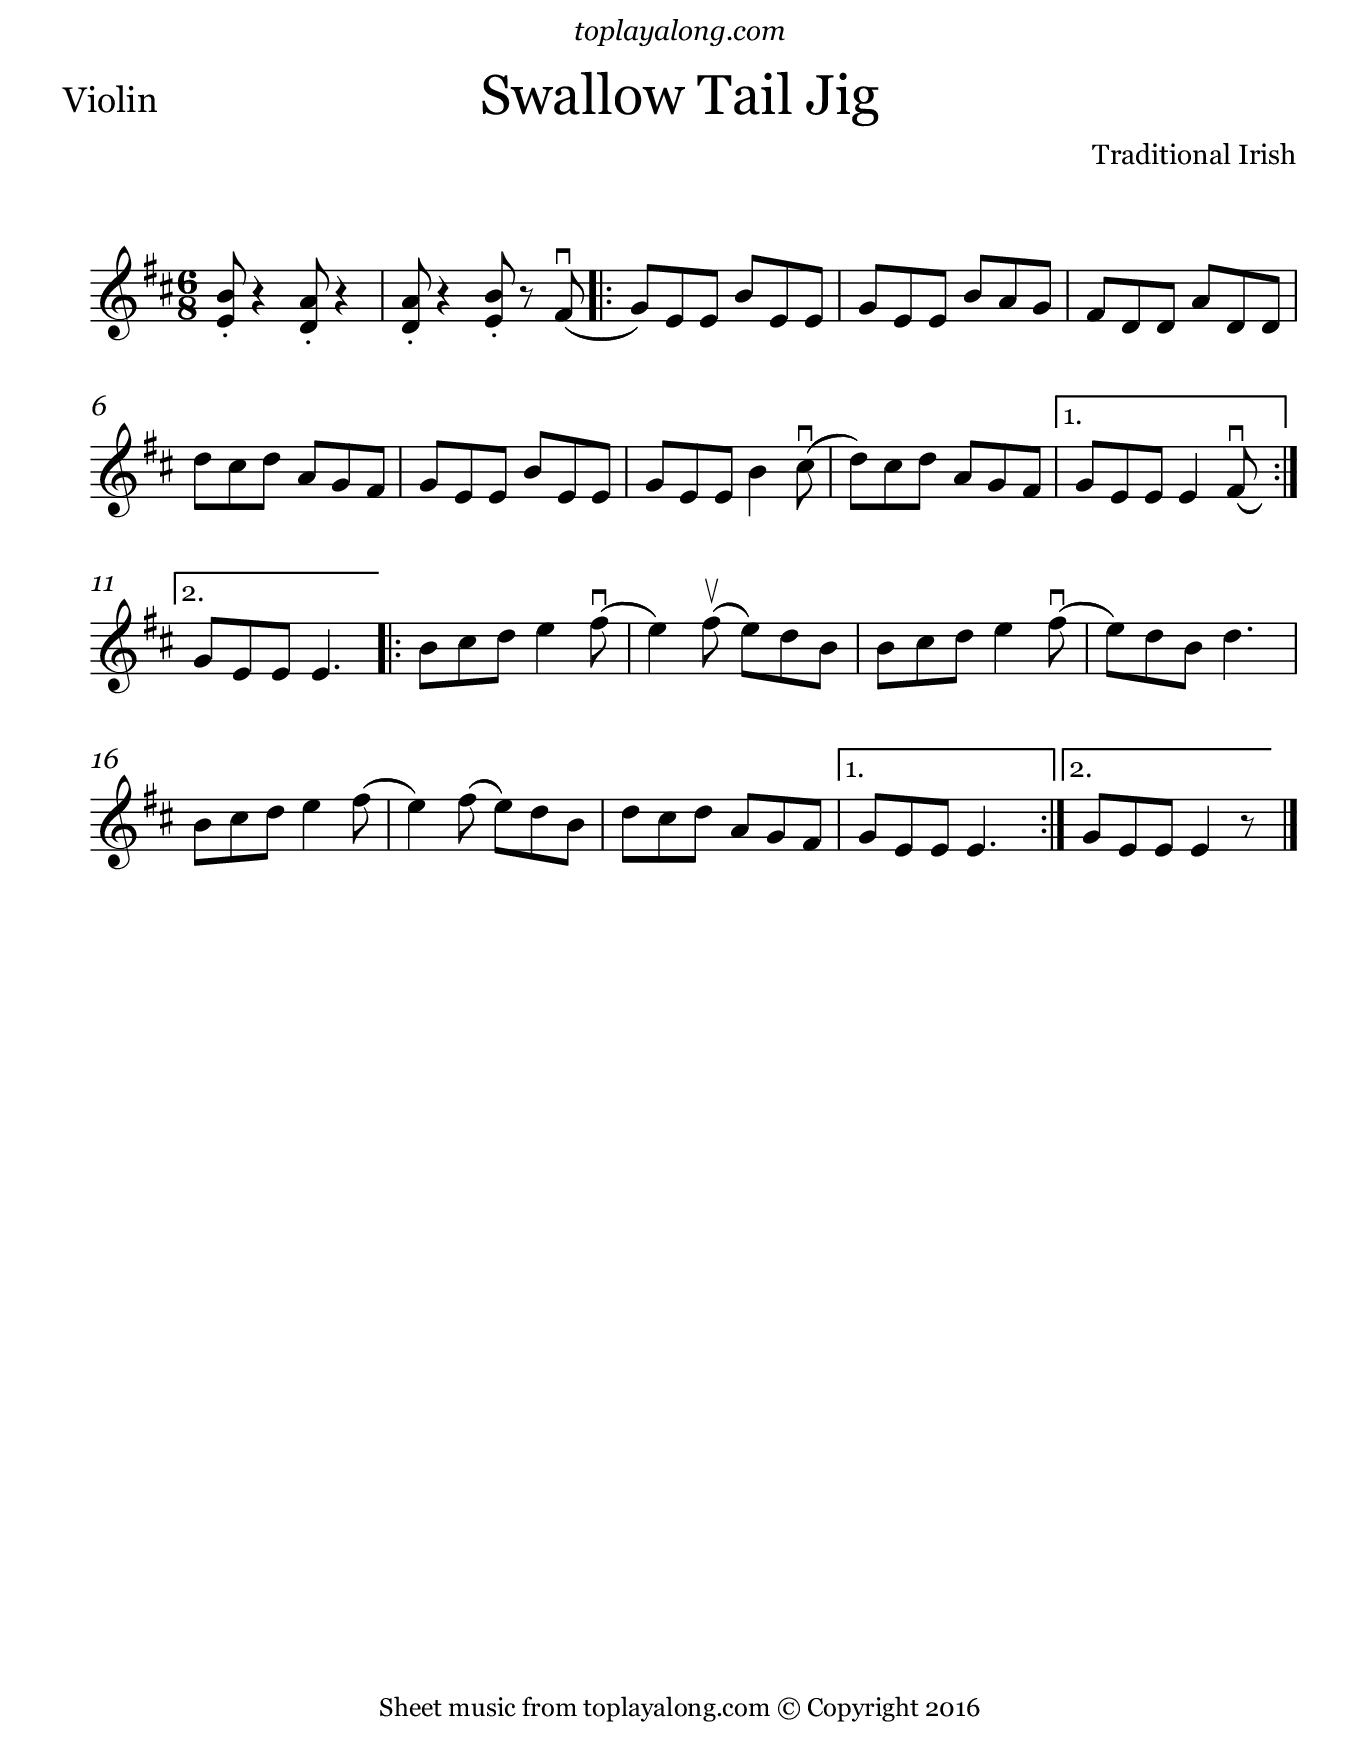 The Swallowtail Jig. Sheet music for Violin, page 1.